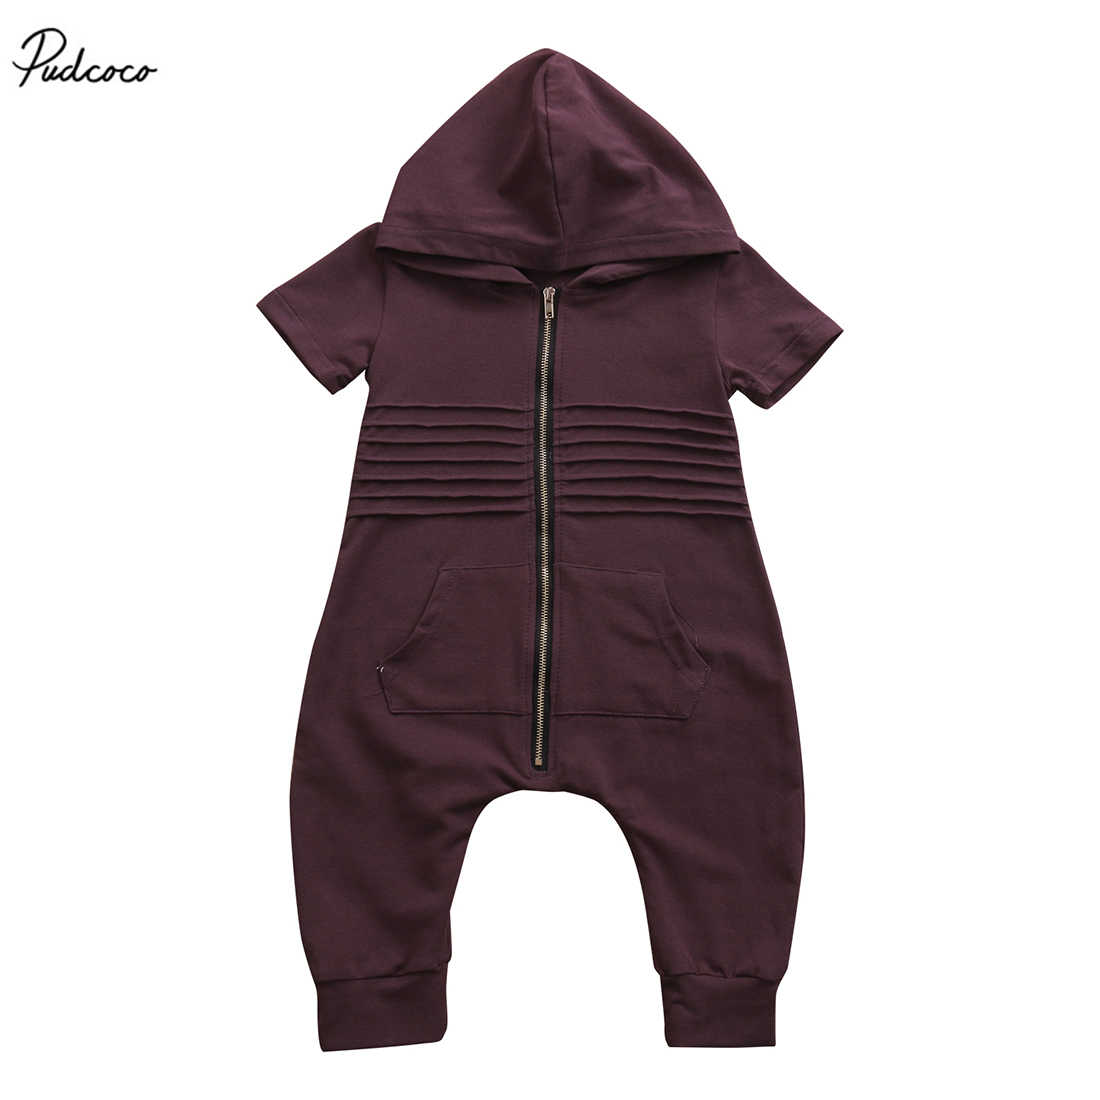 New 2017 Newborn Toddler Baby Boys Short Sleeve Hooded Zipper Romper Jumpsuit Playsuit Outfits Clothes